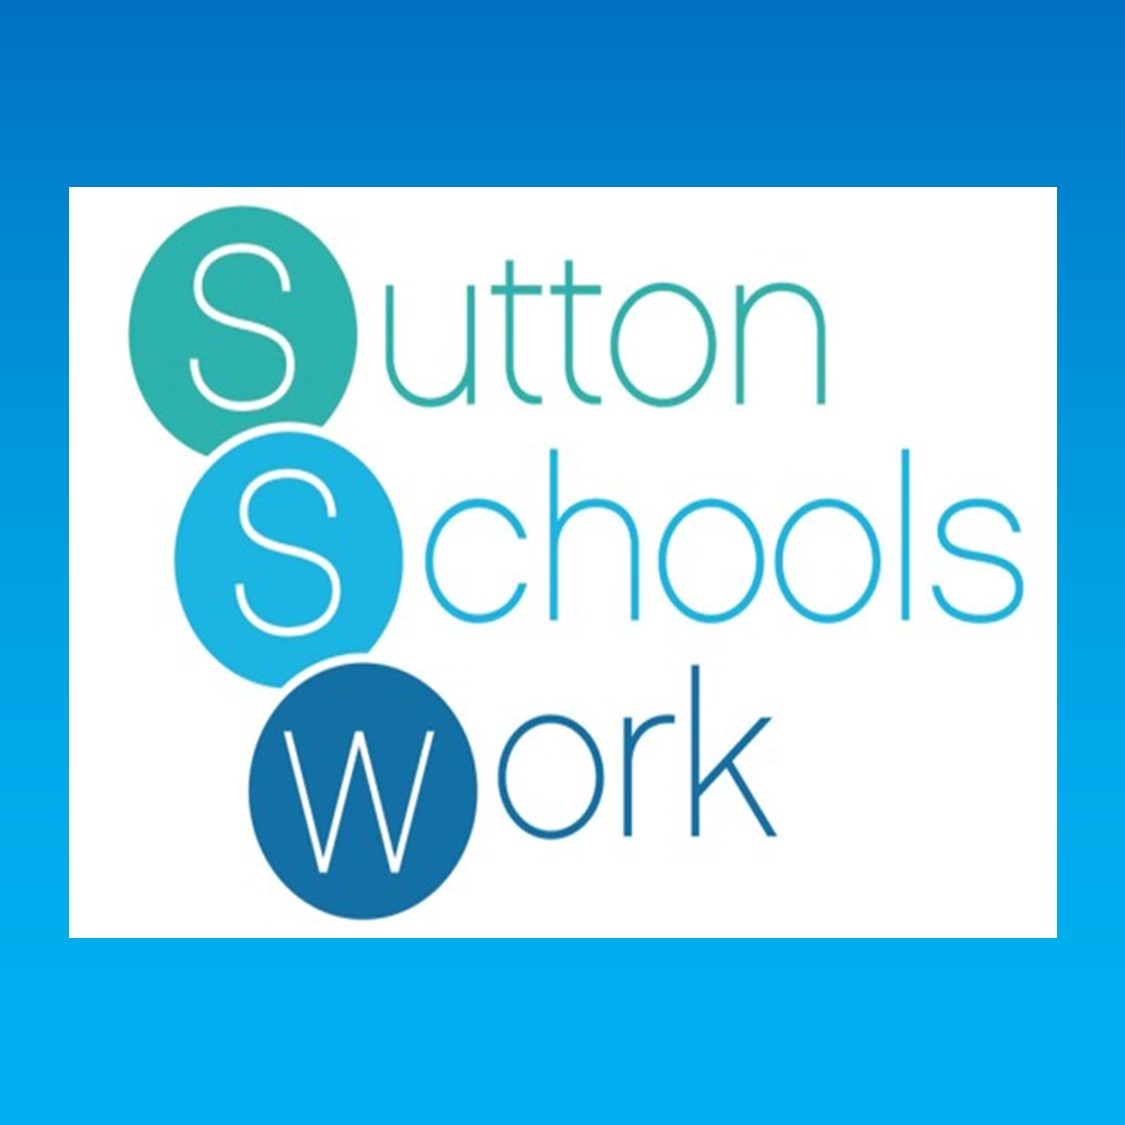 *Sutton Schools Work*Sutton Schools Work is a local Christian Charity that wants to see children and young people in and around the area of Sutton understand and explore Christianity. They aim to do this by delivering tailor made activities including Assemblies, RE Days, RE / PSHE Lessons, Christian Unions and 6th Form Conference Days, in every Primary and Secondary school within the borough. To fulfil this work there is a small team of workers including Simon Ellingham (Director), Kate Travers (Secondary Schools Worker), Sarah Skinner (Primary Schools Worker) and Sara Kolembo (Secretary). They are also supported by a Board of Trustees and rely heavily on the dedication of a team volunteers. Find out more at suttonschoolswork.co.uk or contact Monica Cockram mc74_lind@hotmail.com